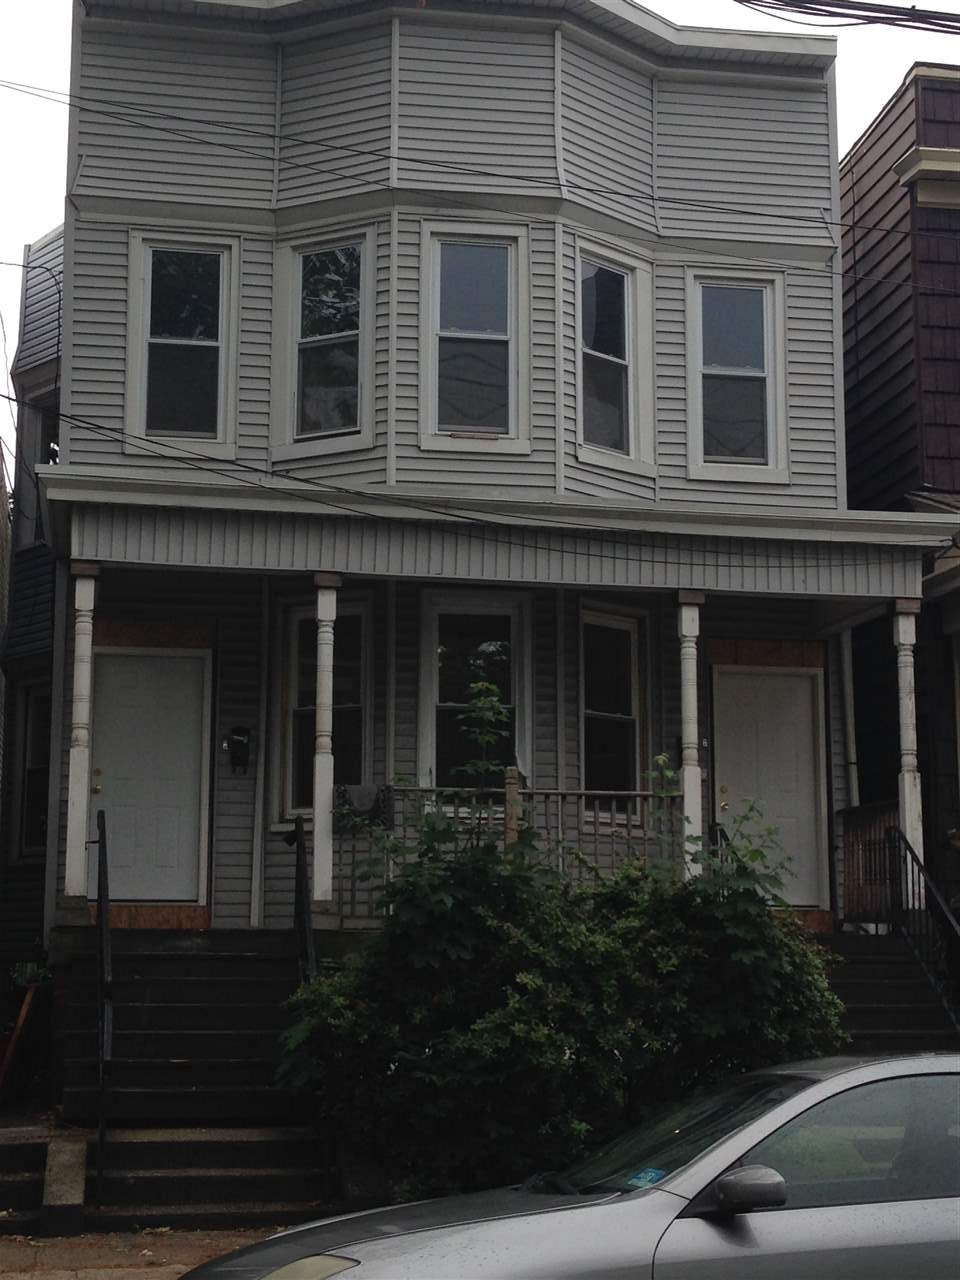 169 WINFIELD AVE 1, JC, Greenville, NJ 07305